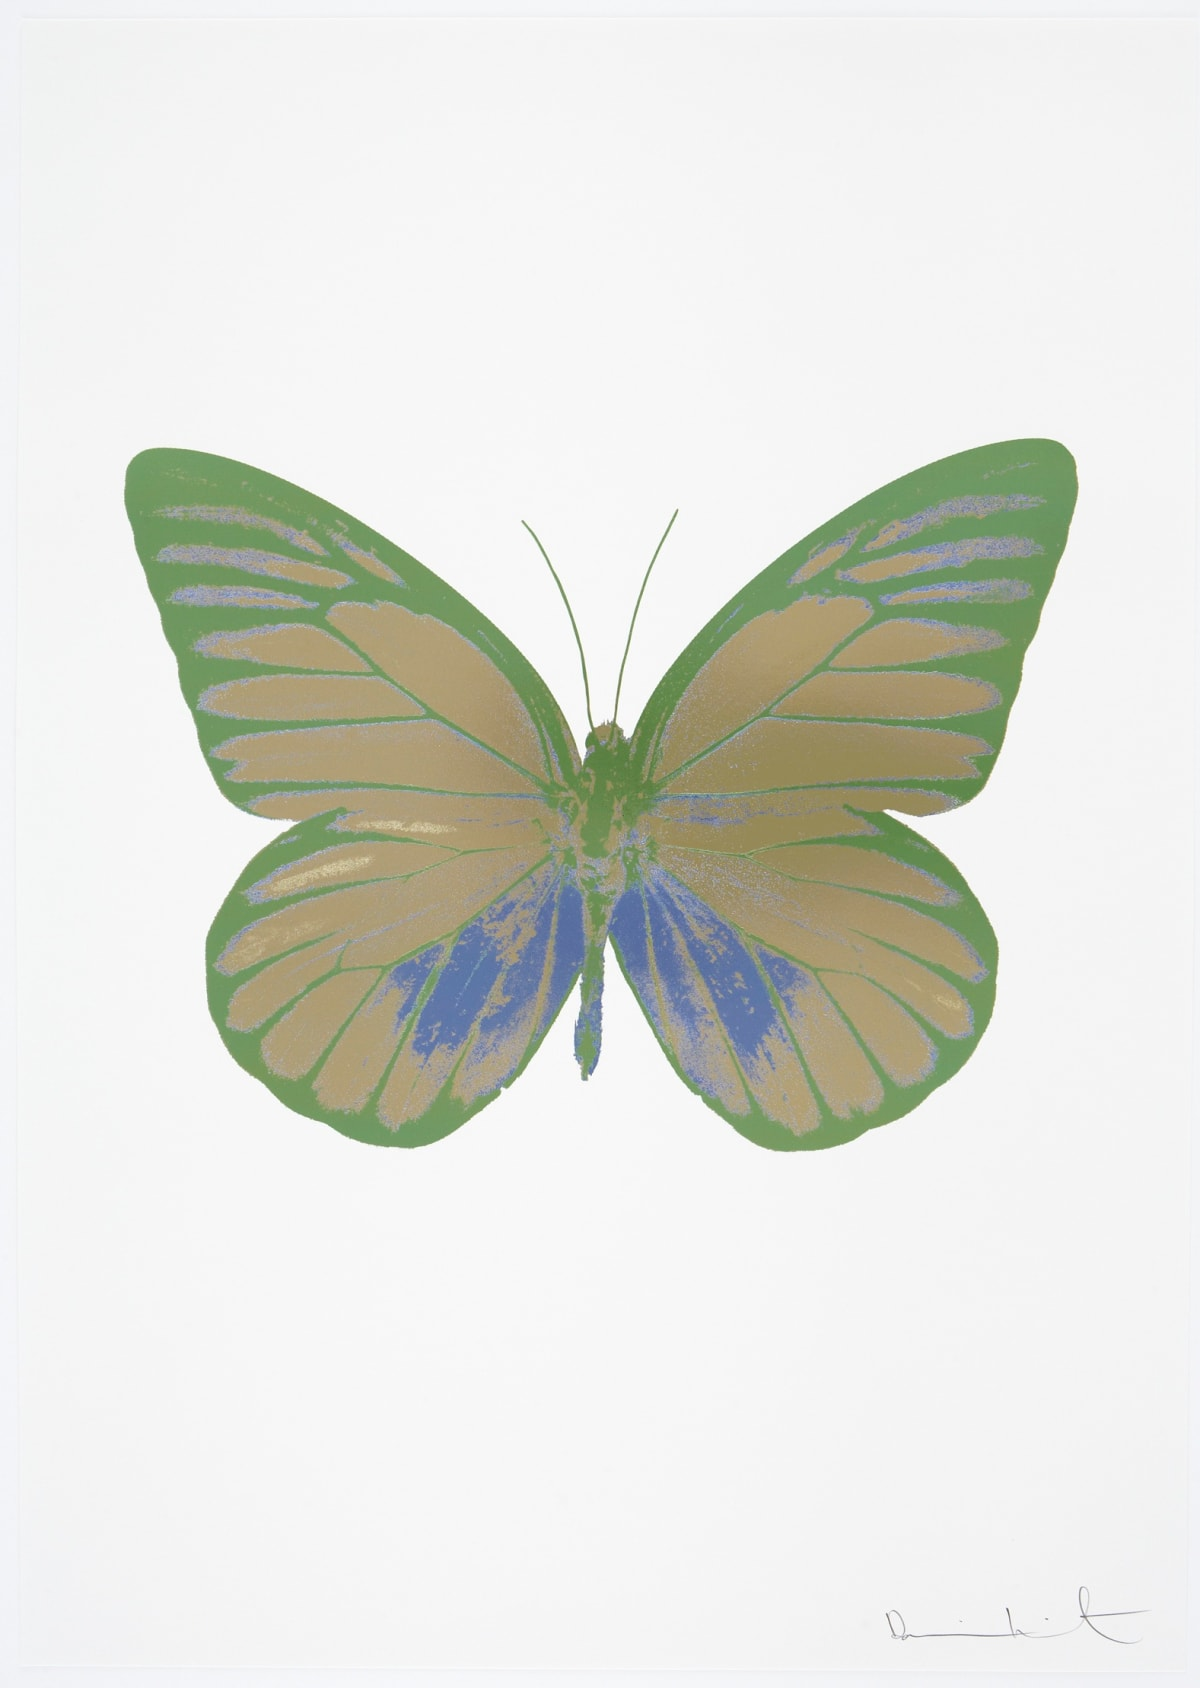 Damien Hirst The Souls I - Cool Gold/Cornflower Blue/Leaf Green, 2010 3 colour foil block on 300gsm Arches 88 archival paper. Signed and numbered. Published by Paul Stolper and Other Criteria 72 x 51cm OC7766 / 659-29 Edition of 15